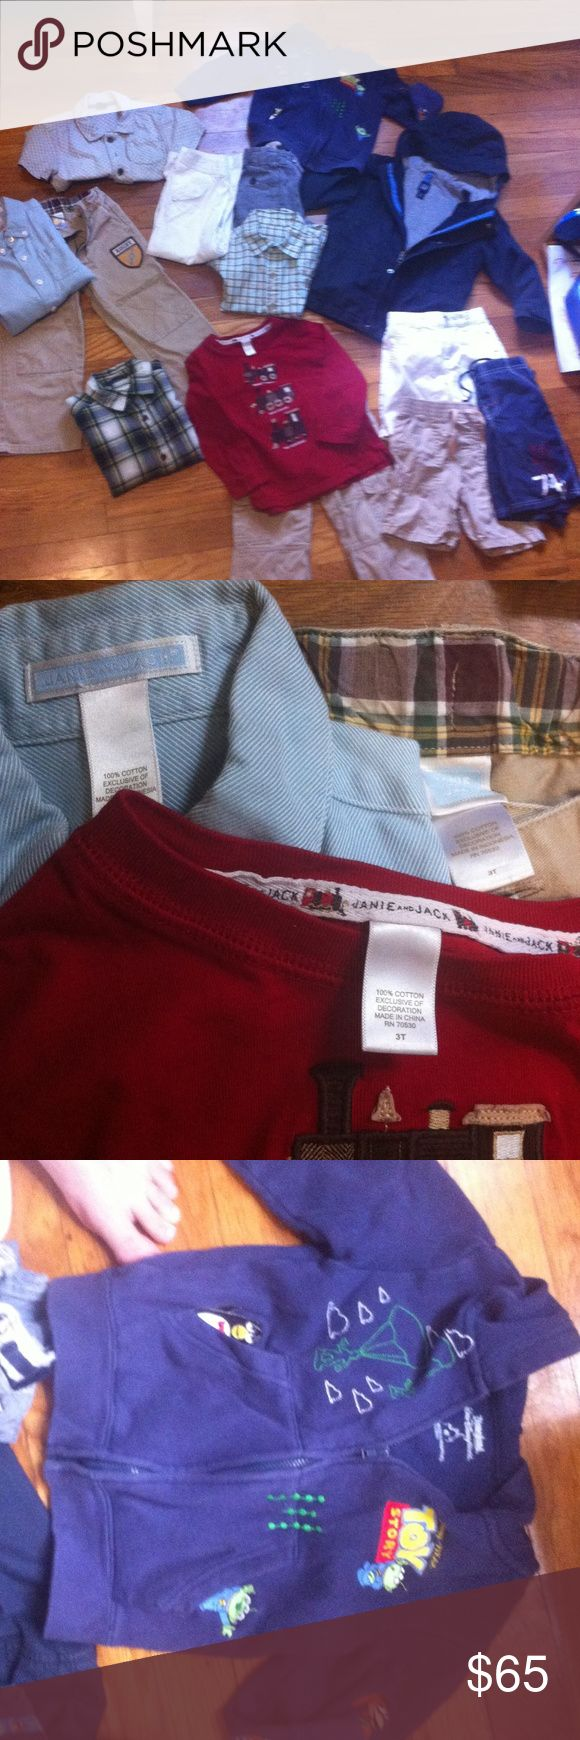 Boys Clothes bundle!!! 1. Janie and Jack red train long sleeve.                     2. Janie and Jack blue long sleeve.                       3. Janie and Jack Rugby kaki pants.                         4. Janie and Jack white pants.                                5. Janie and Jack kaki pants.                                  6. Janie and Jack white shorts.                             AND MANY MORE THINGS!! Sorry couldn't list them all Other